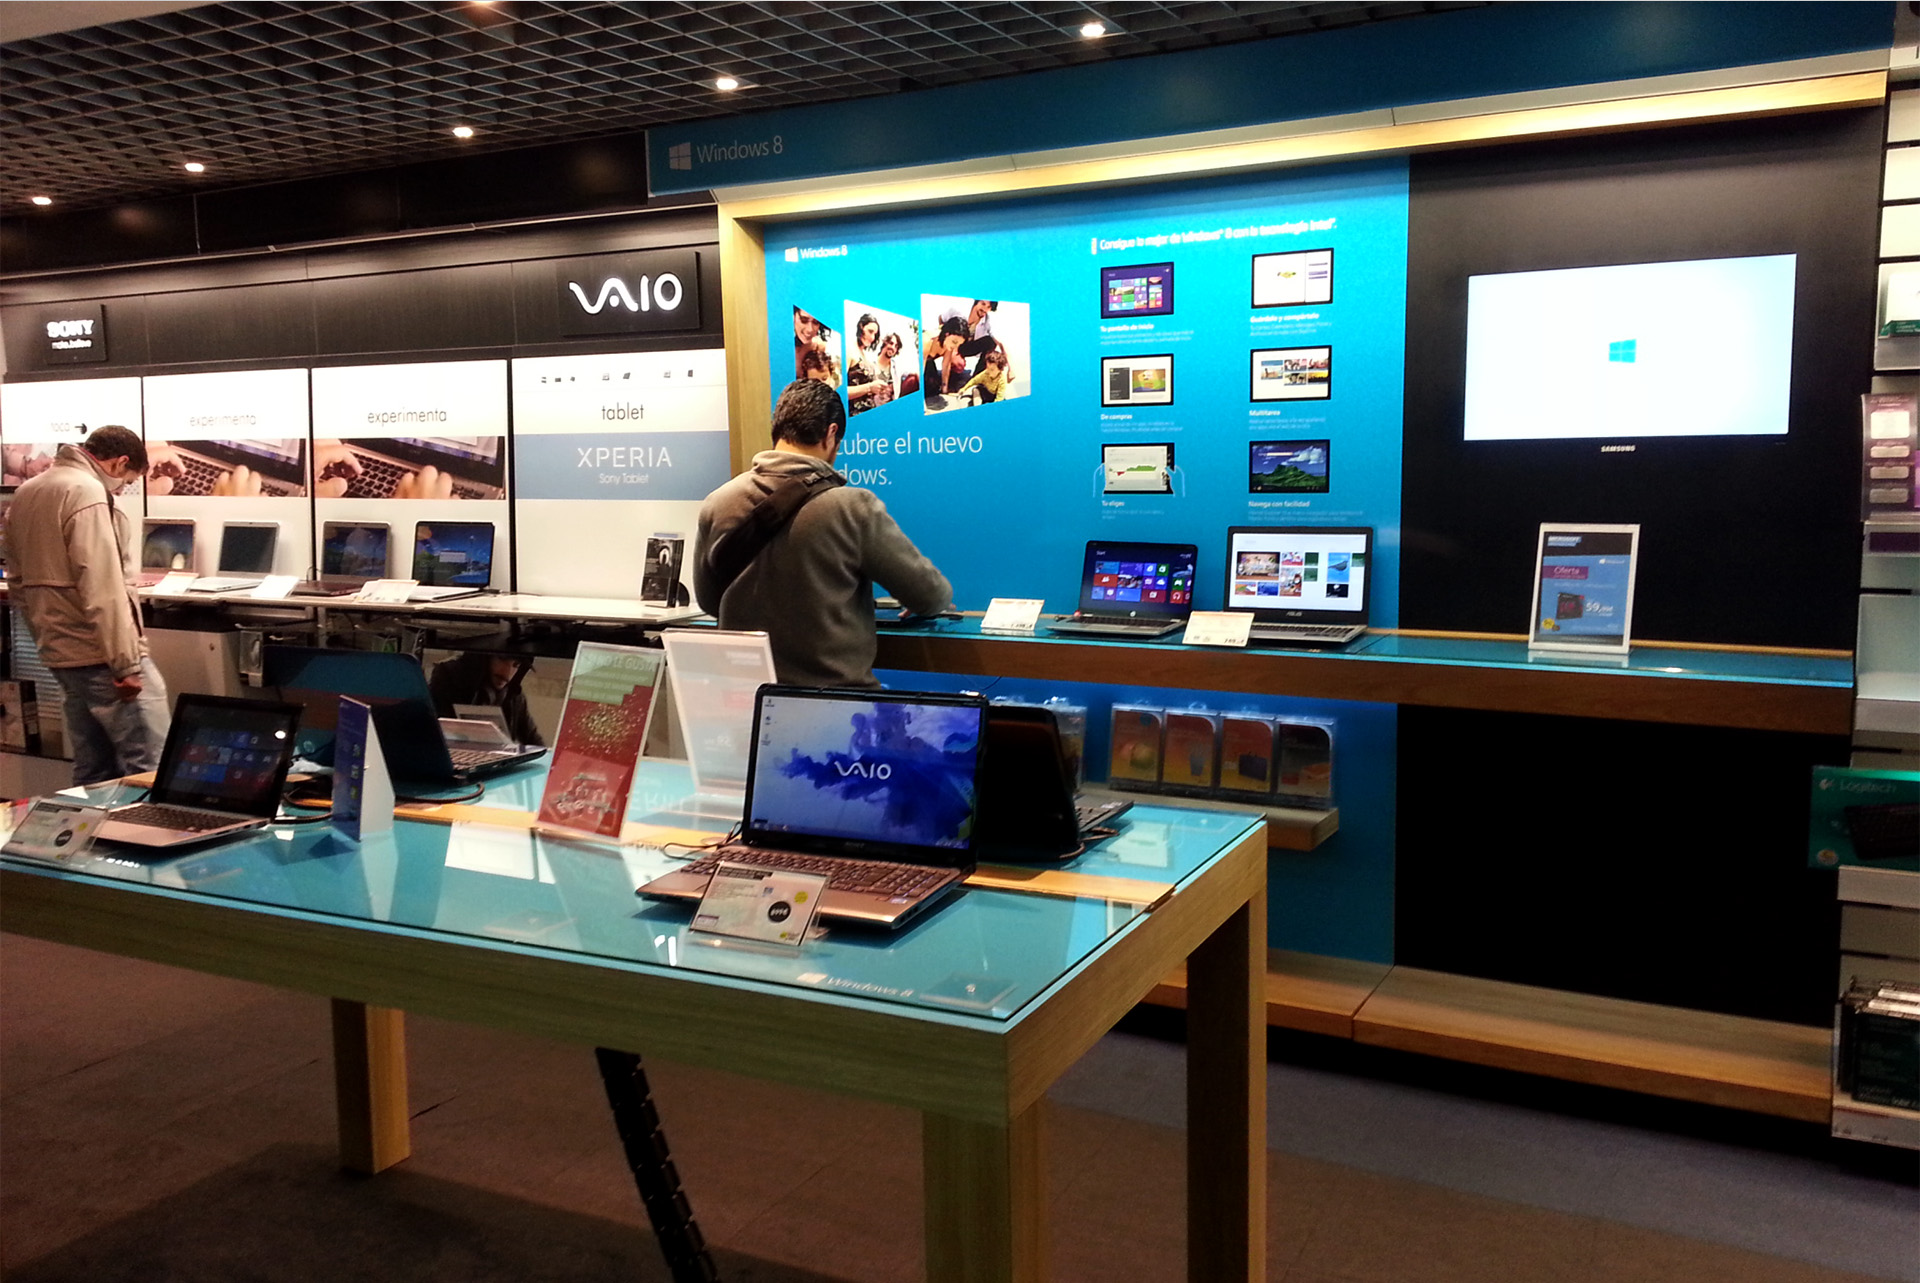 Mueble de Experiencia Windows en Fnac Castellana